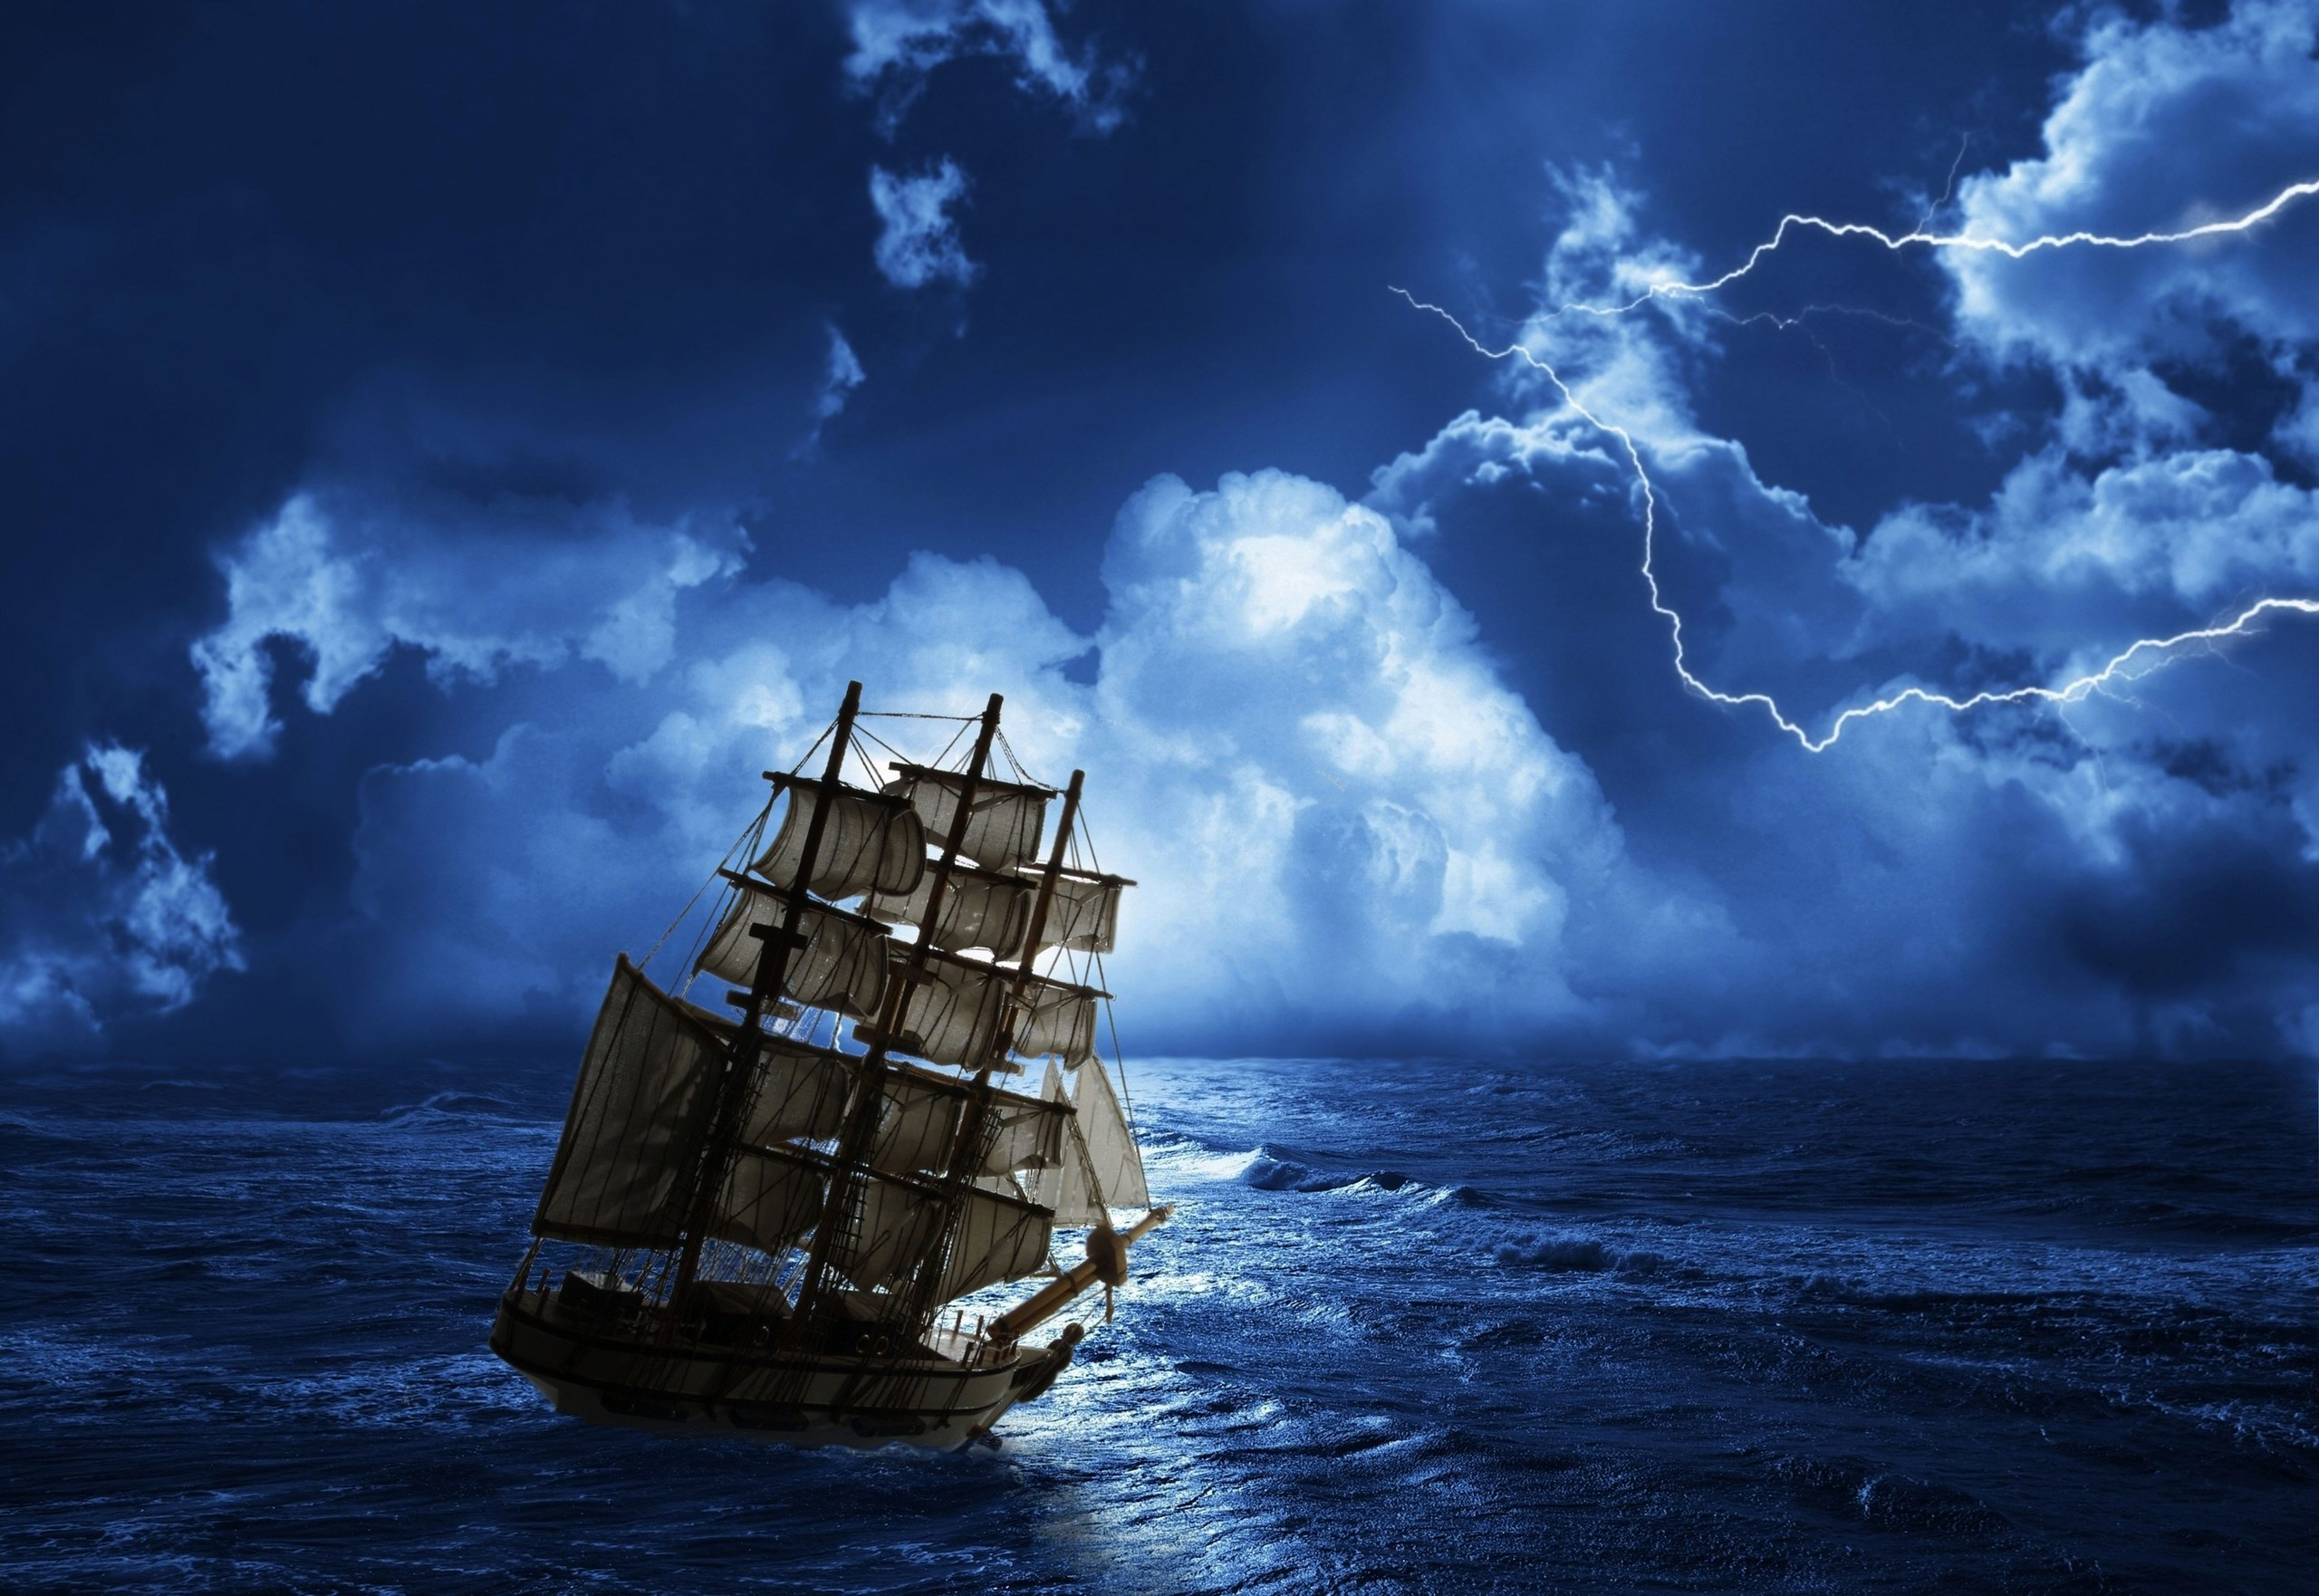 ships in a storm quotes quotesgram